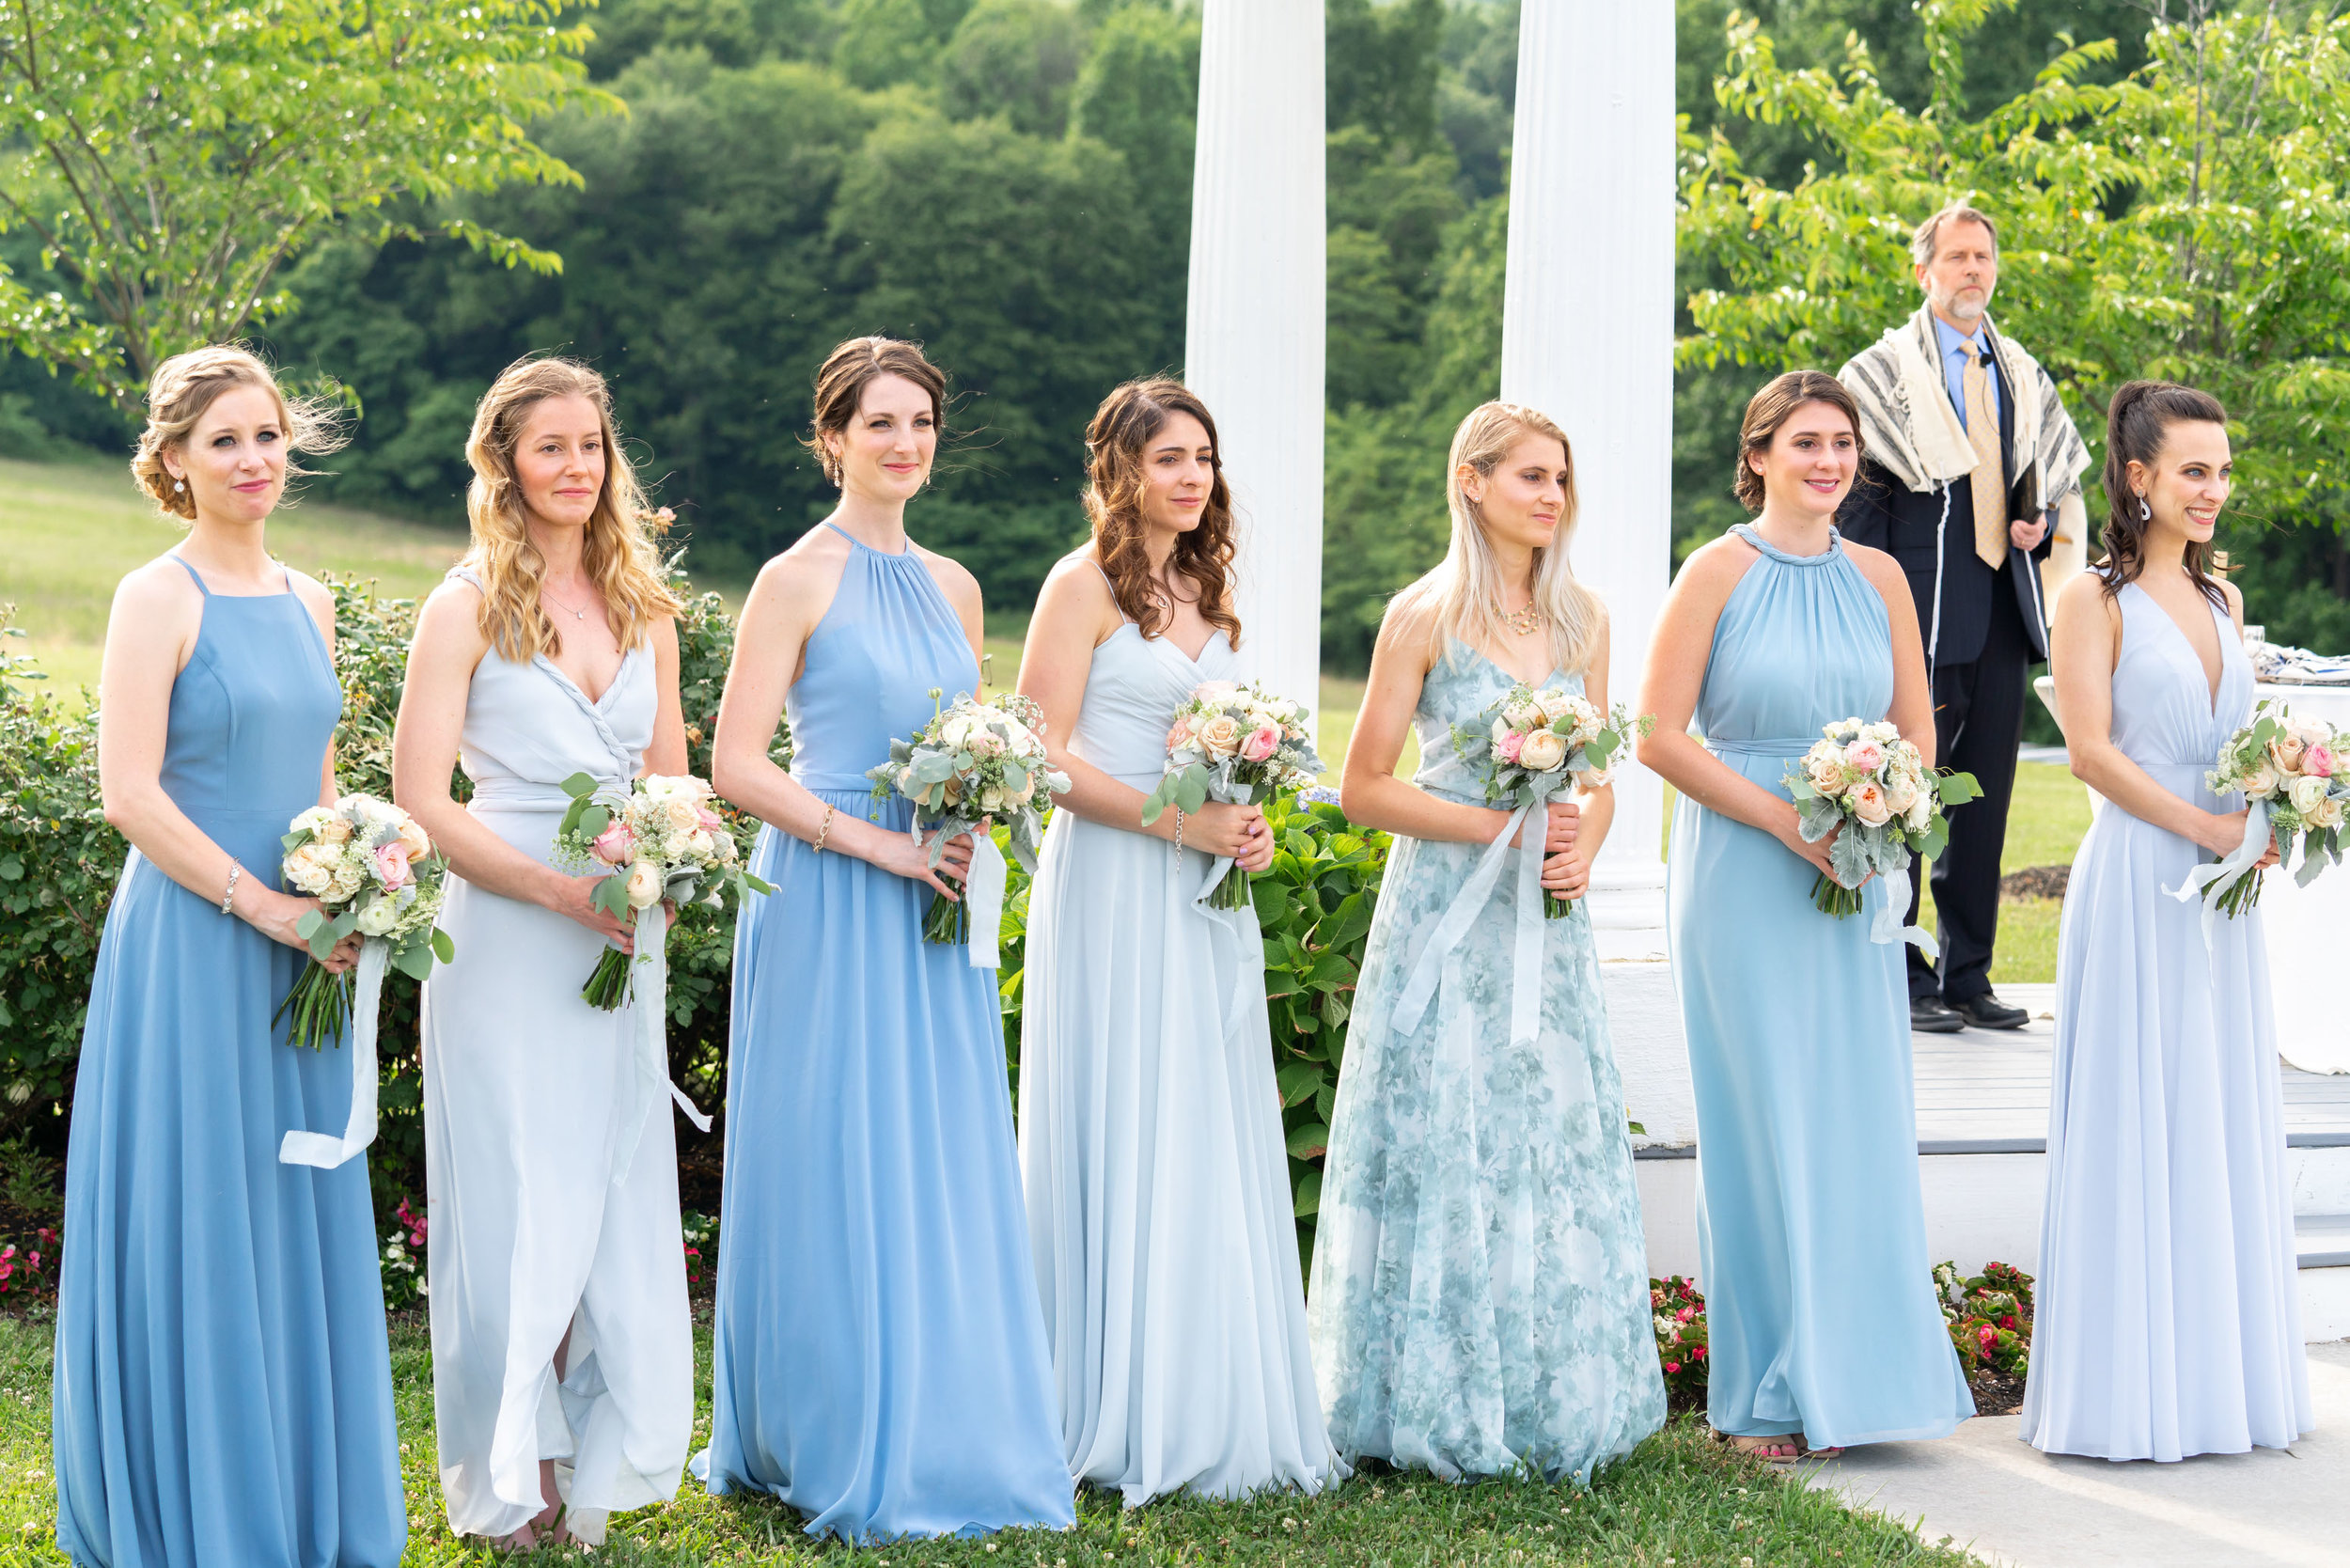 Bridesmaids in light blue dresses from joanna august, jenny you and bhldn. Ceremony site at Springfield Manor